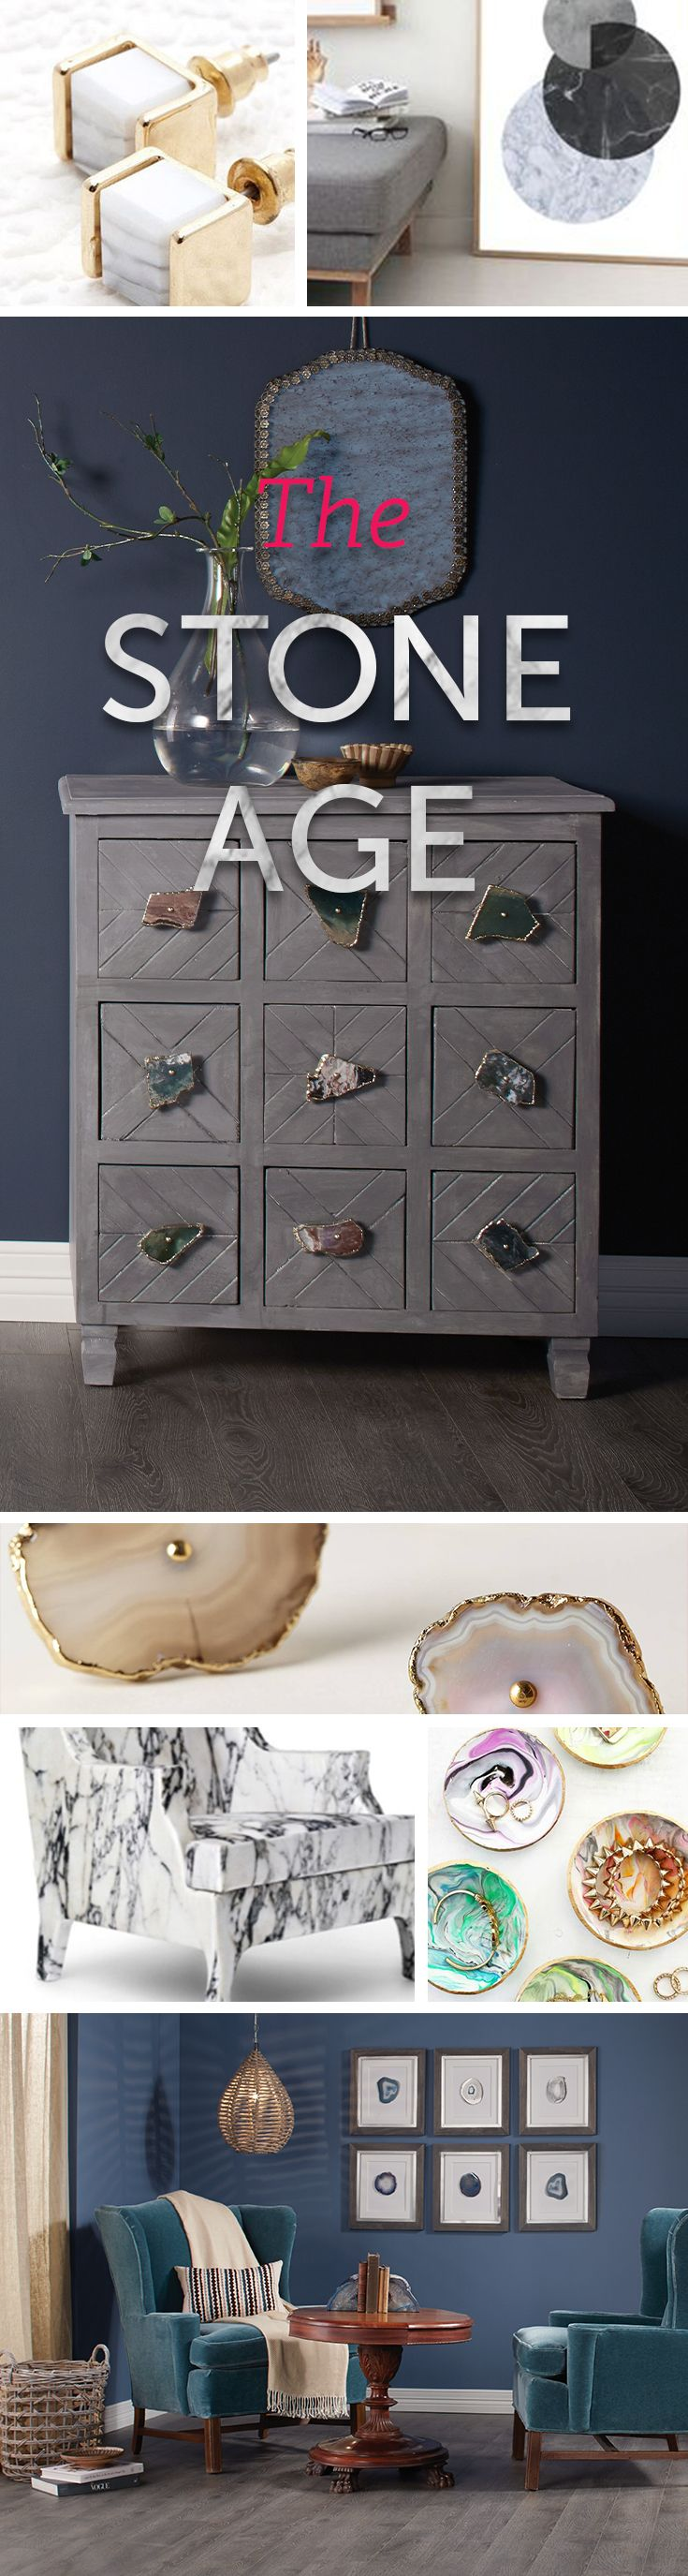 The stone age is back. | Quick•Step Style Blog #trending